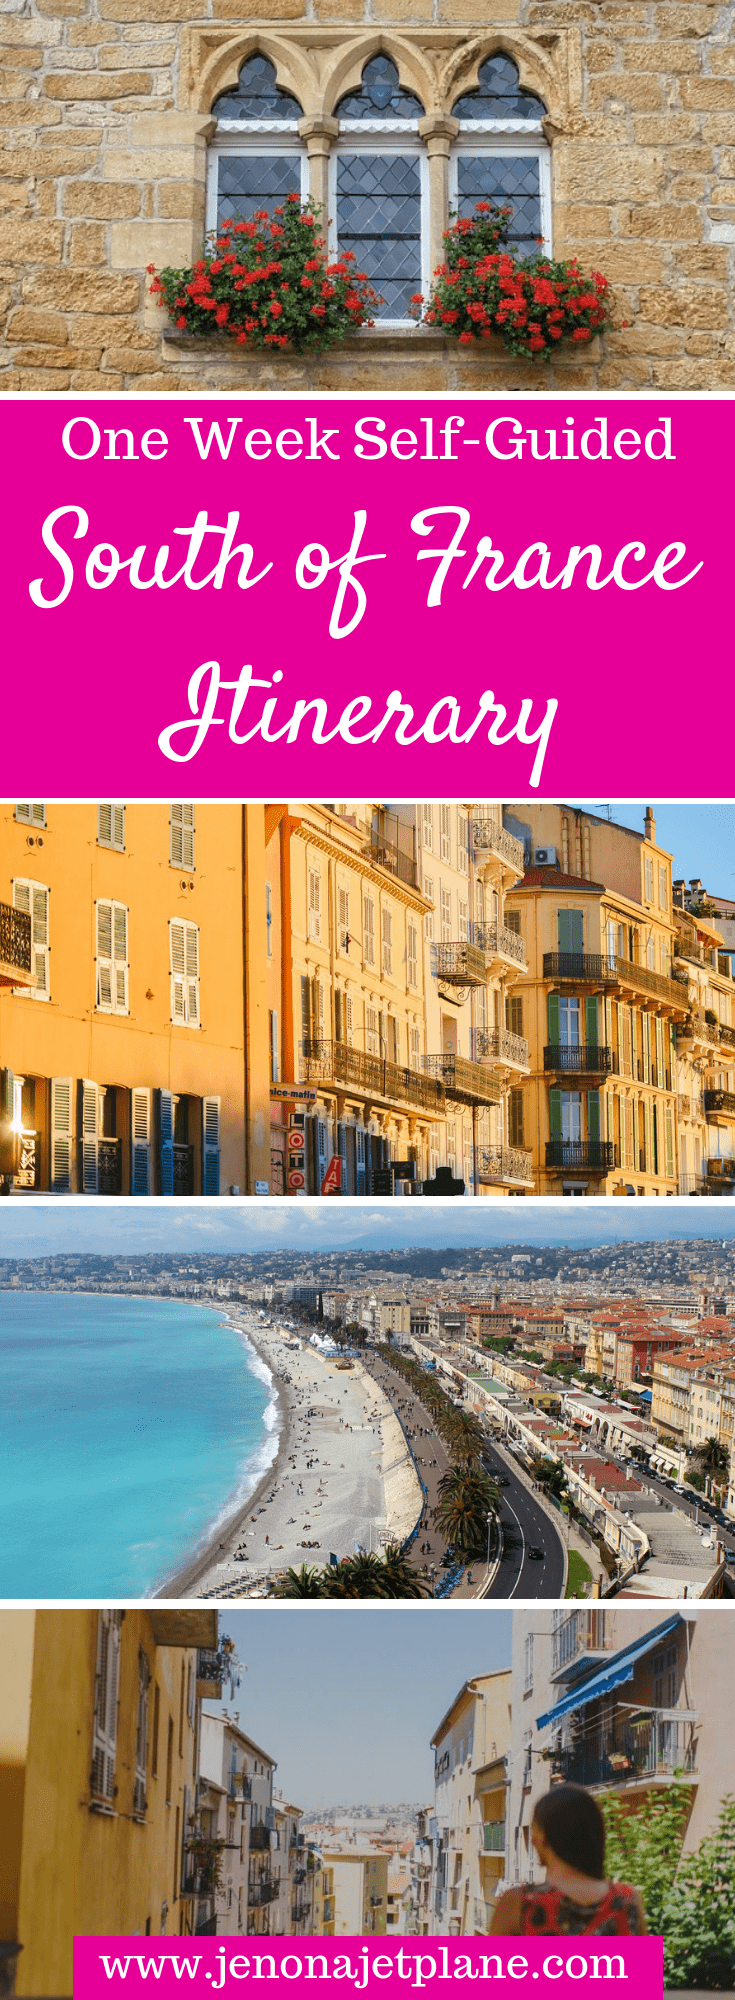 Looking for the perfect South of France itinerary? From lavender fields to the Van Gogh trail, here's everything you can't miss on a South of France road trip. Save to your travel board for future reference. #southoffrance #southoffrancetravel #southoffranceroadtrip #europetravel #francetravel #roadtripideas #europetrip #franceitinerary #franceitineraryoneweek